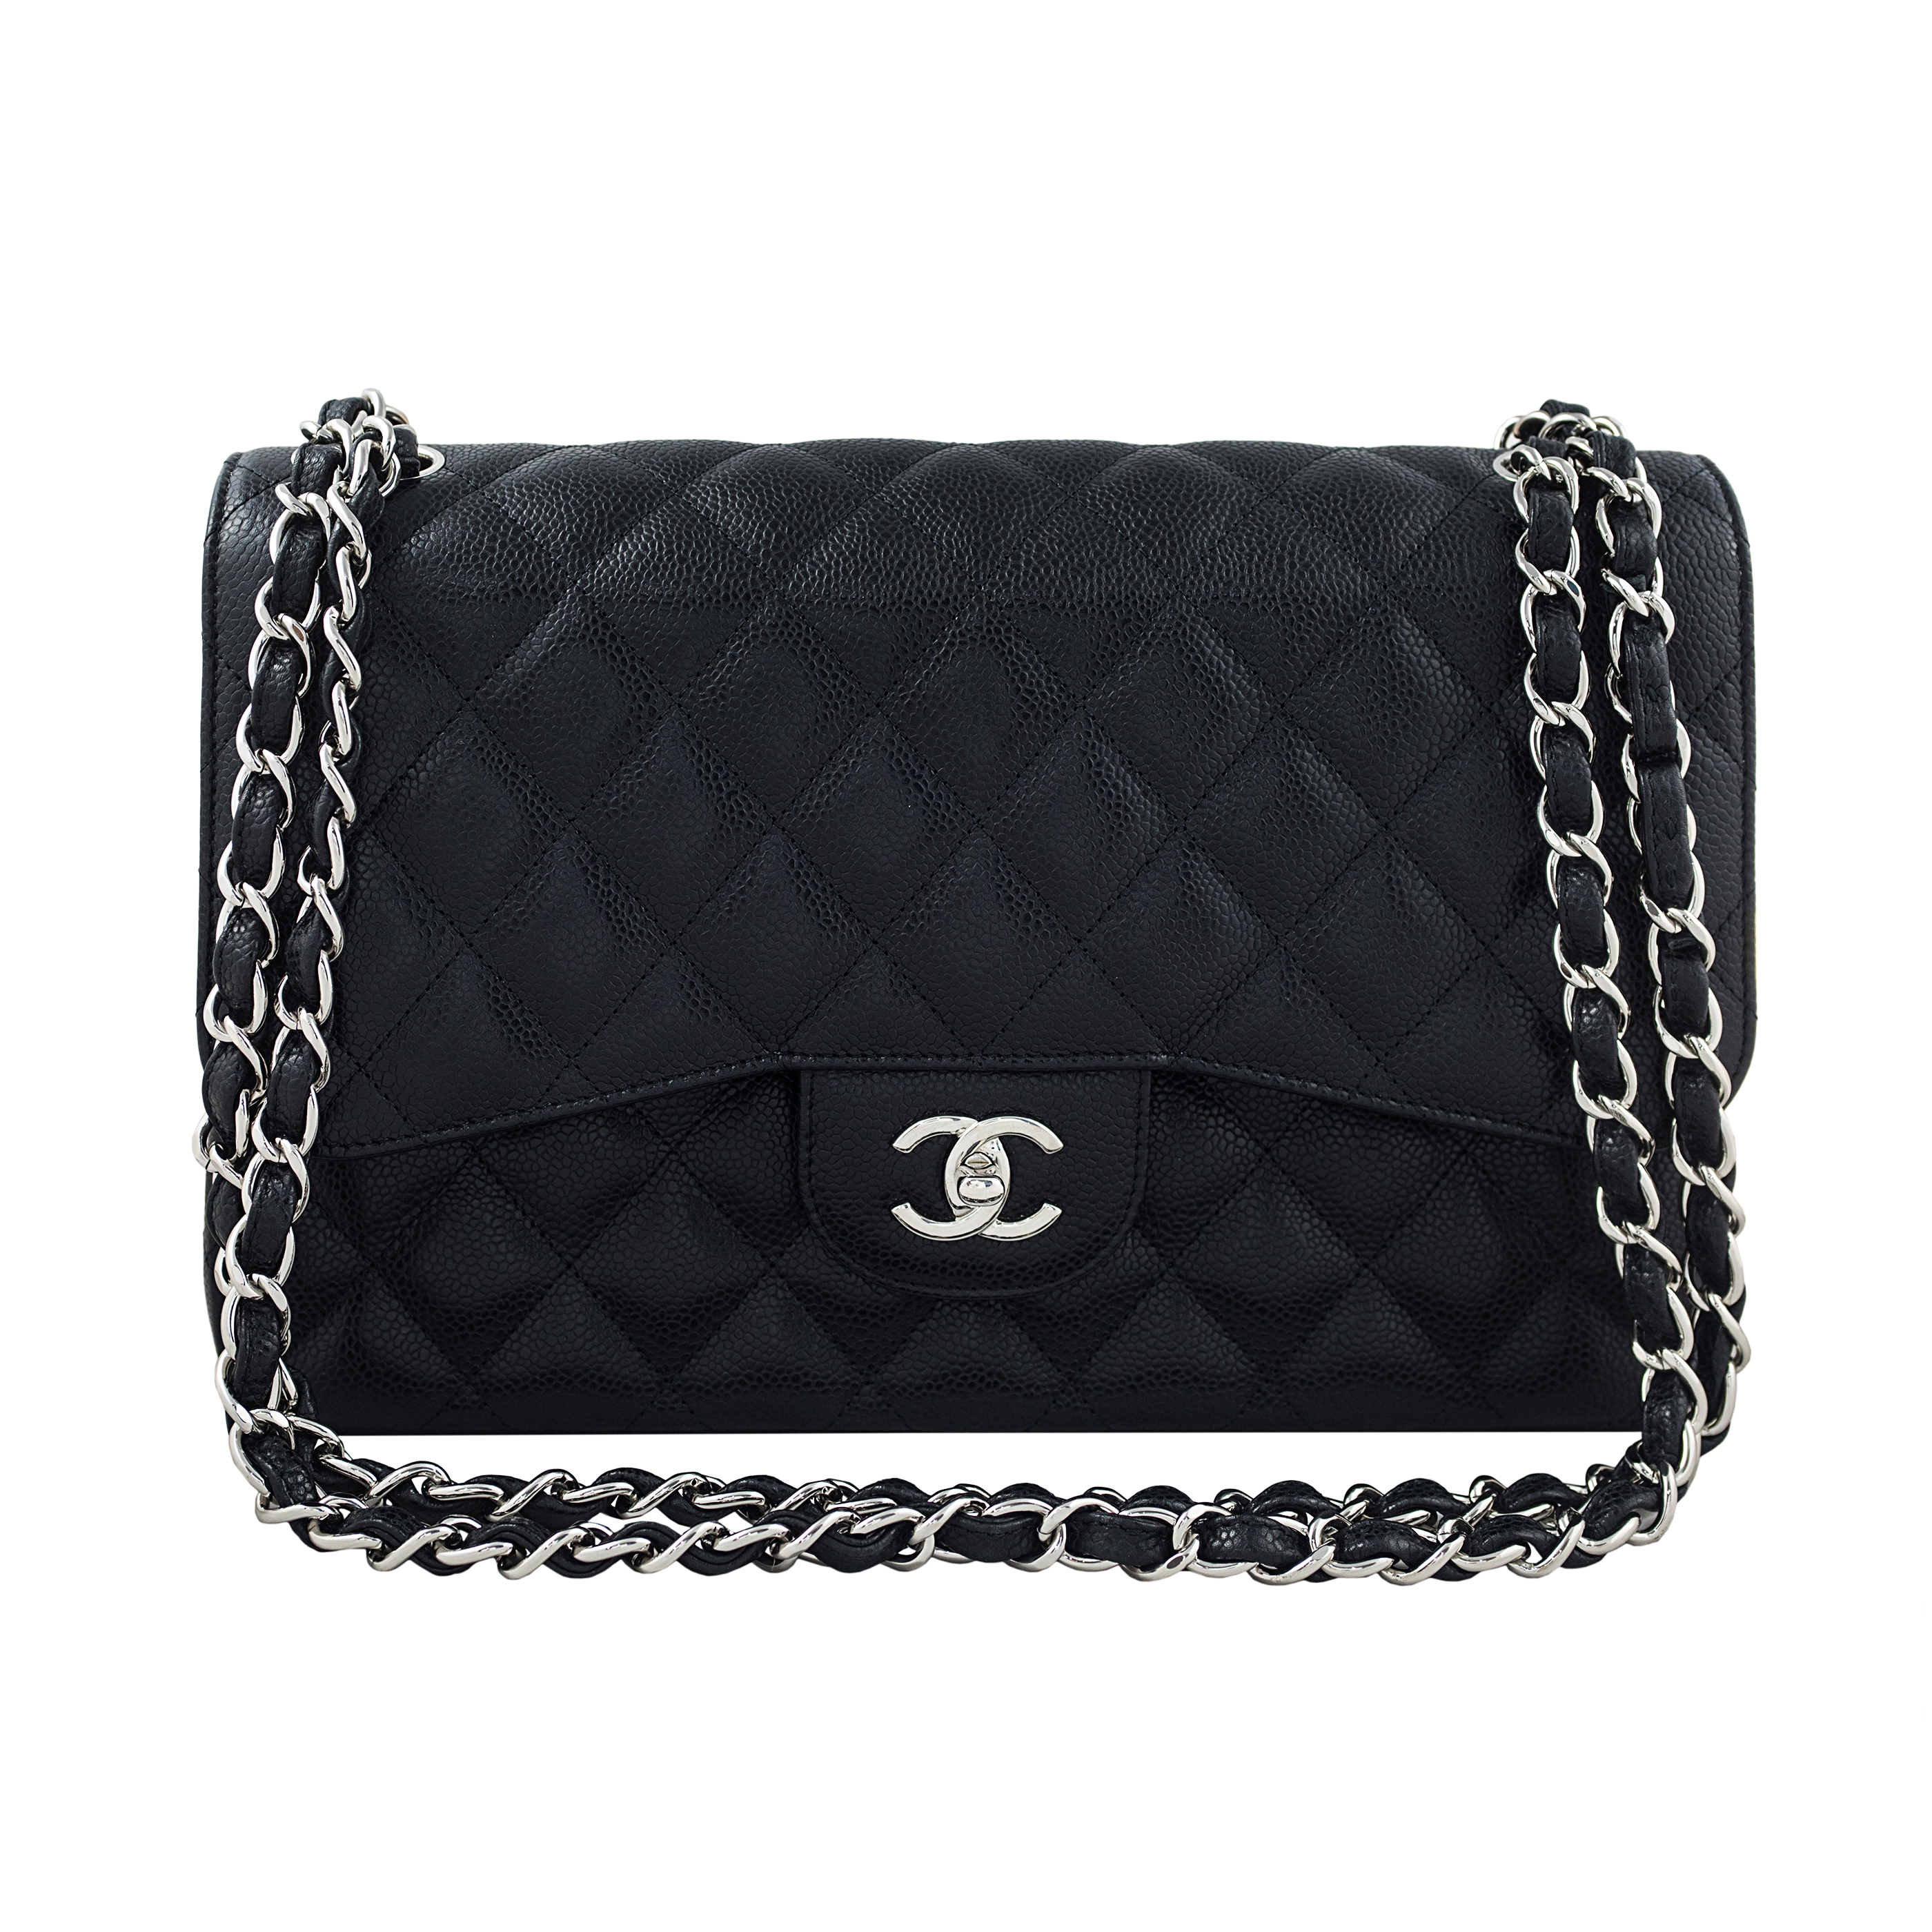 Chanel Jumbo Caviar Flap Bag - Condition Exterior: Excellent Interior: Excellent Hardware: Excellent Corners: Excellent Comments: One owner. Used rarely.  Brand: Chanel Age: 2009  Height: 19.5 cm Width: 30 Depth: 10  Accompanied By: Box, card, dust bag, sticker